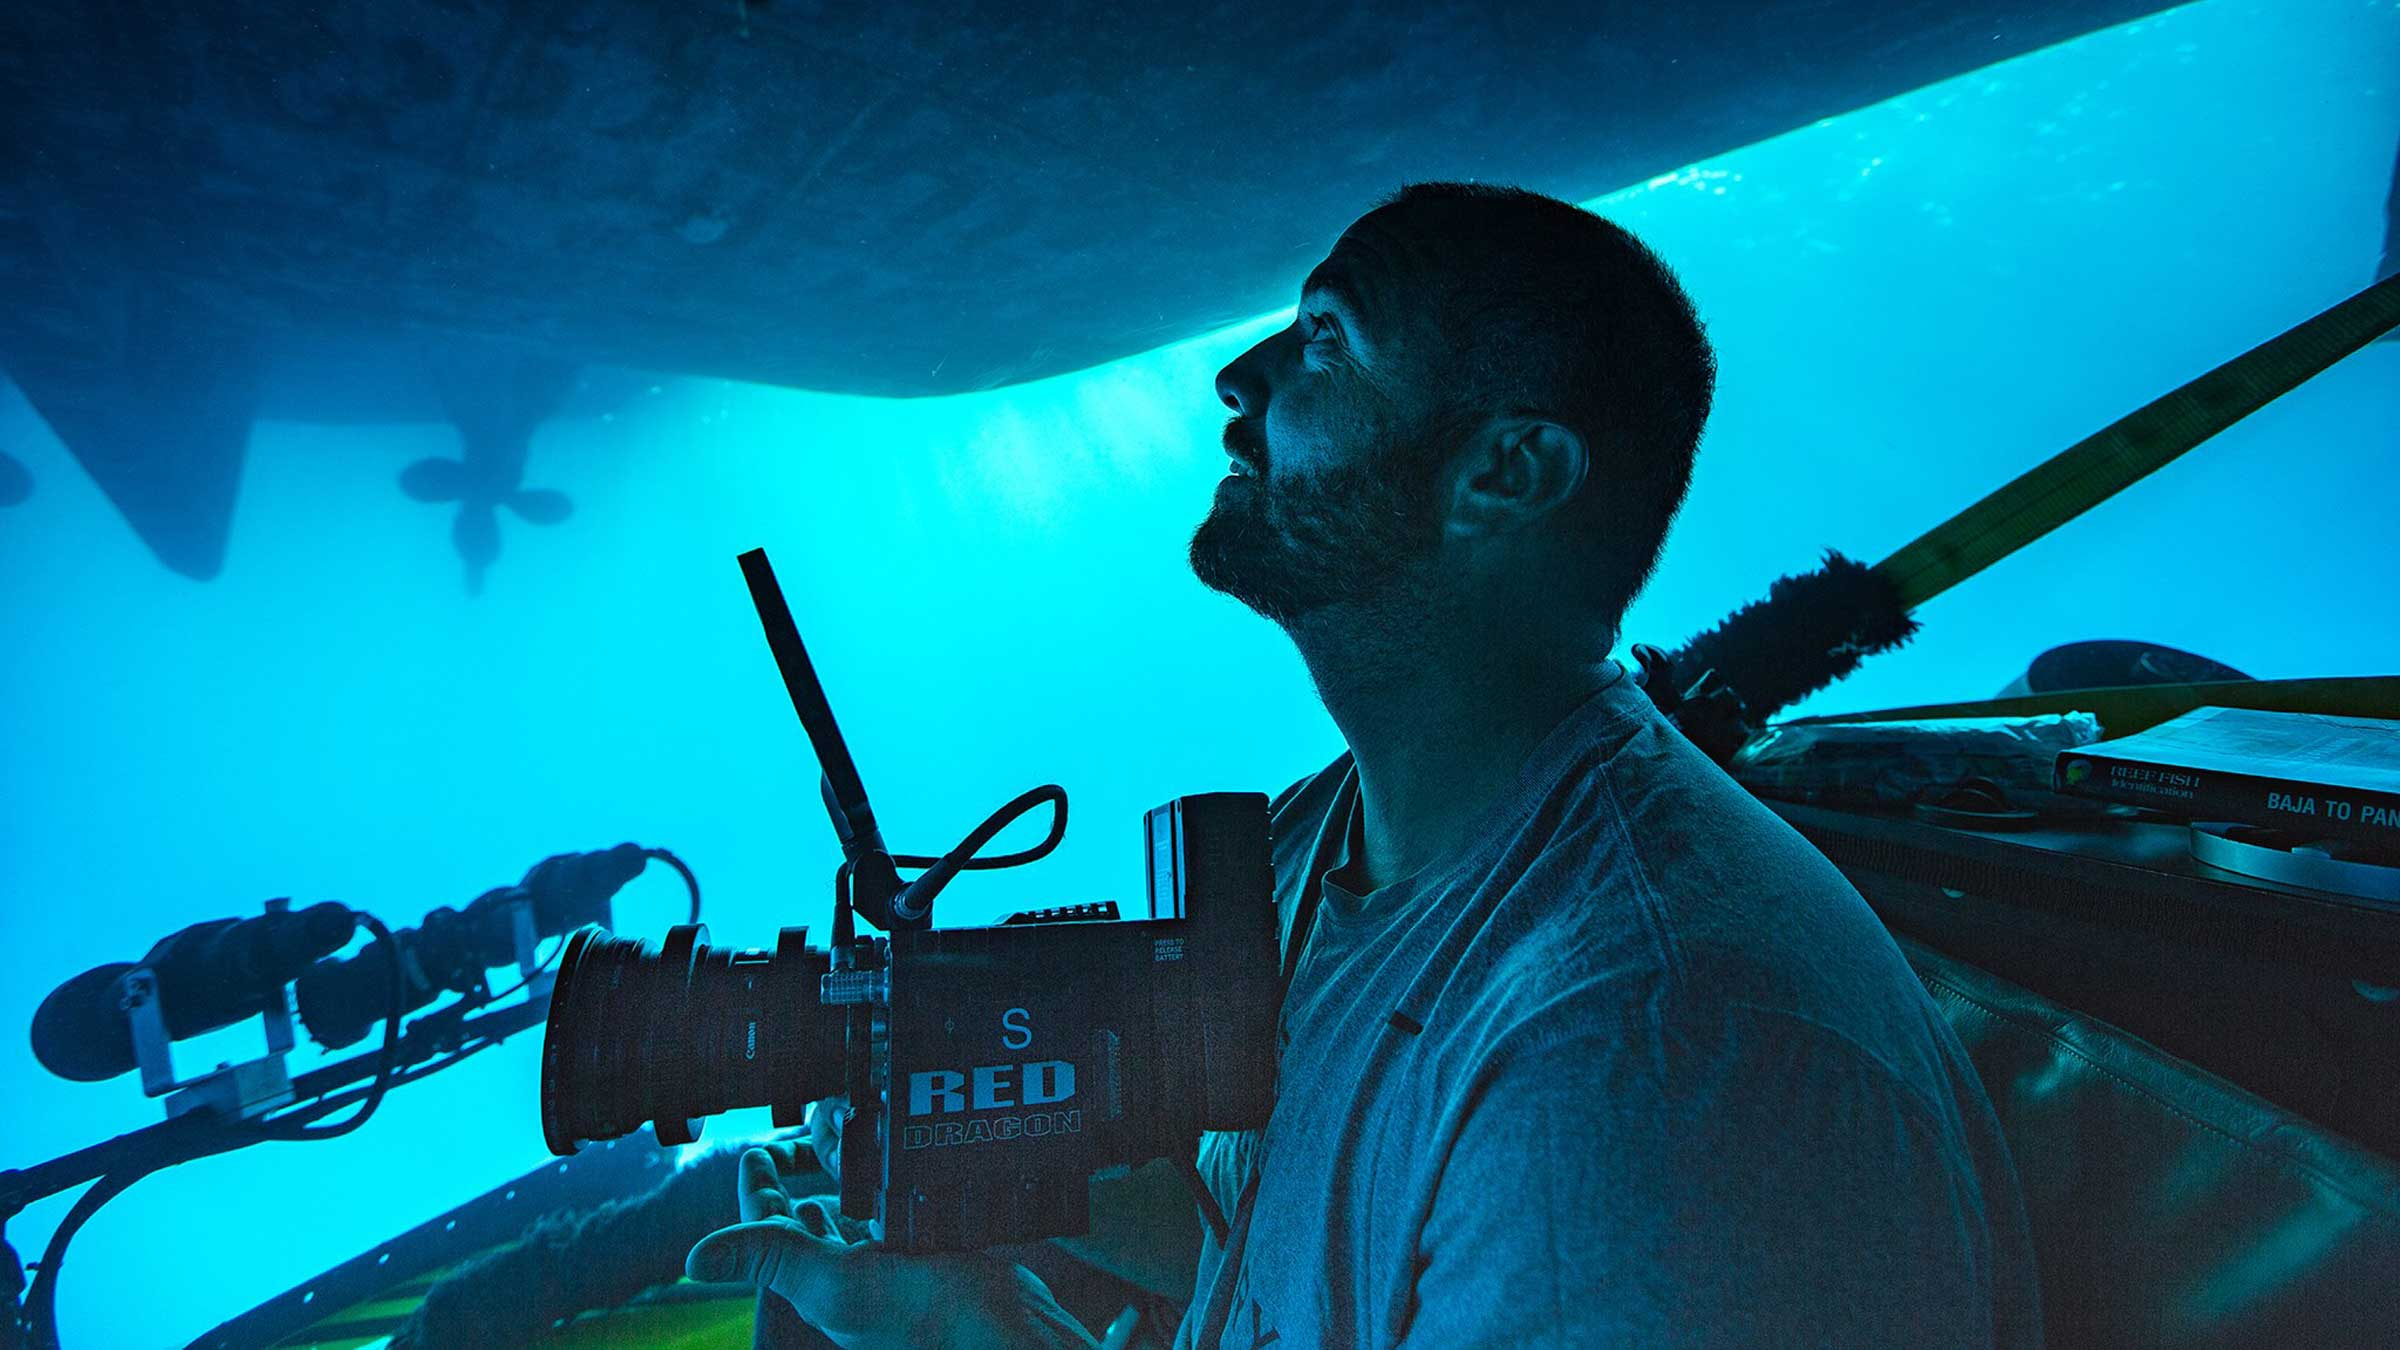 RED digital cinema filmed with a Triton submersible